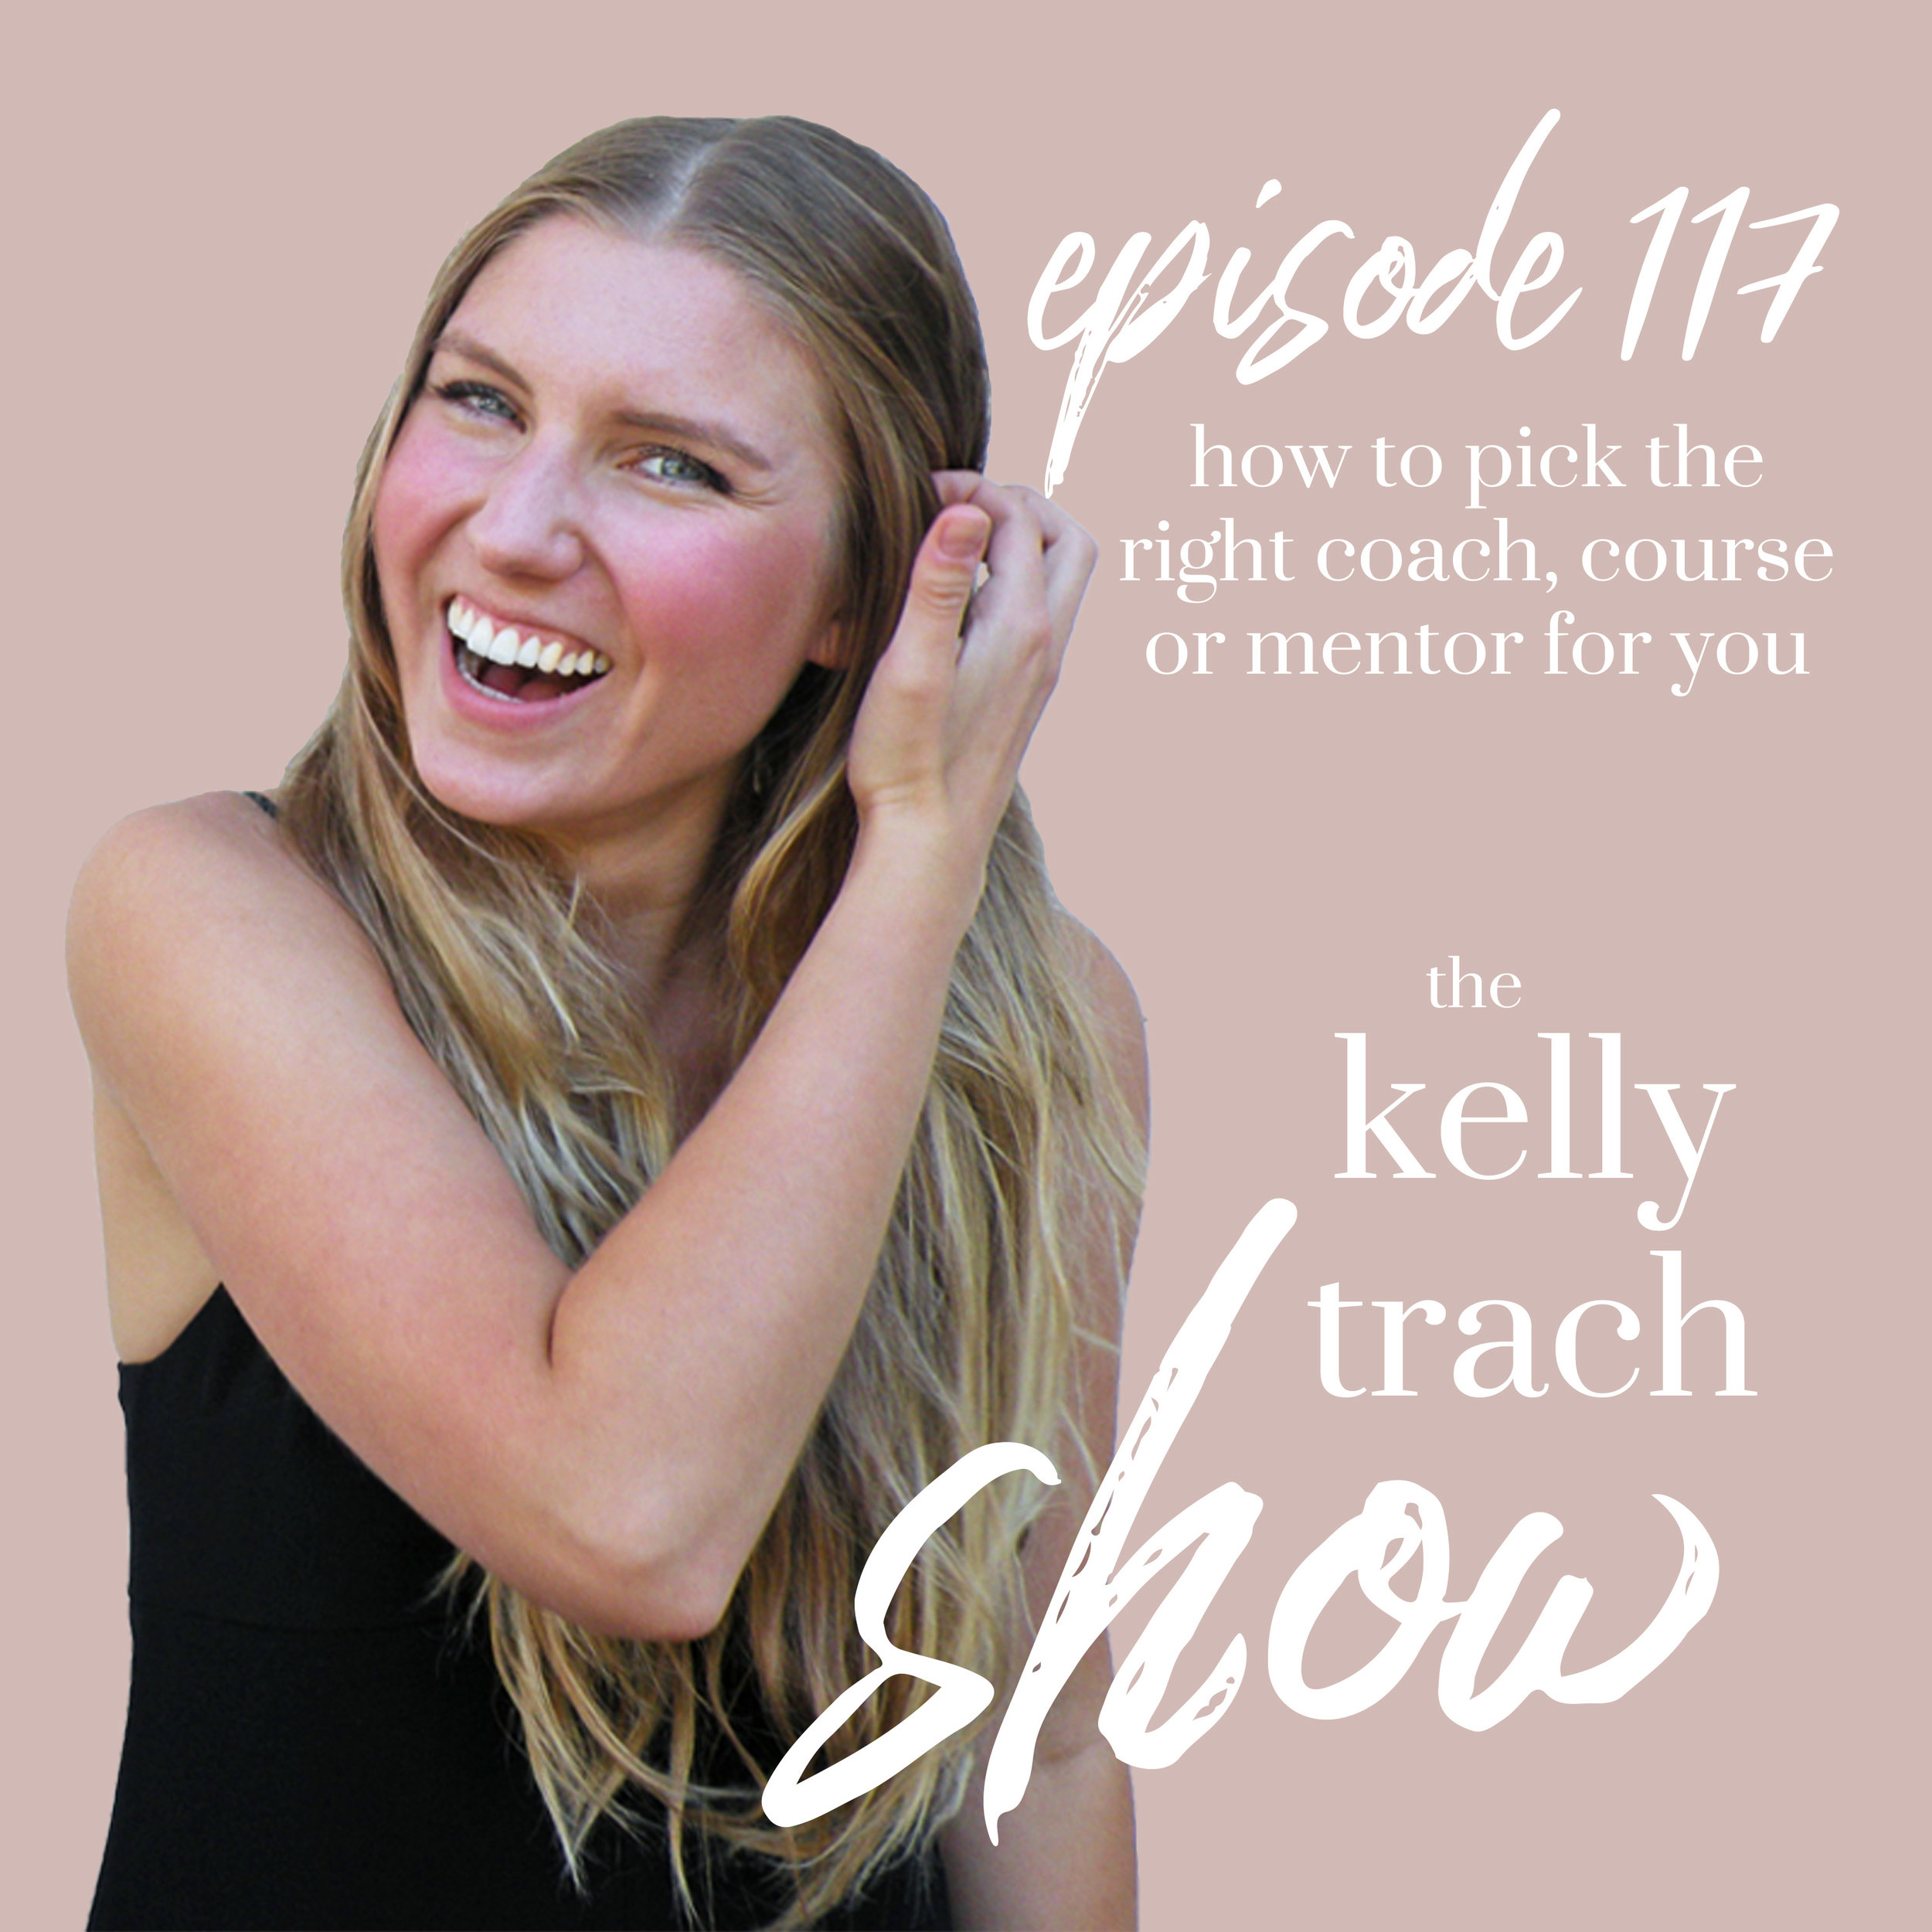 117 How to Pick the Right Coach, Course or Mentor for You The Kelly Trach Show Podcast.jpg